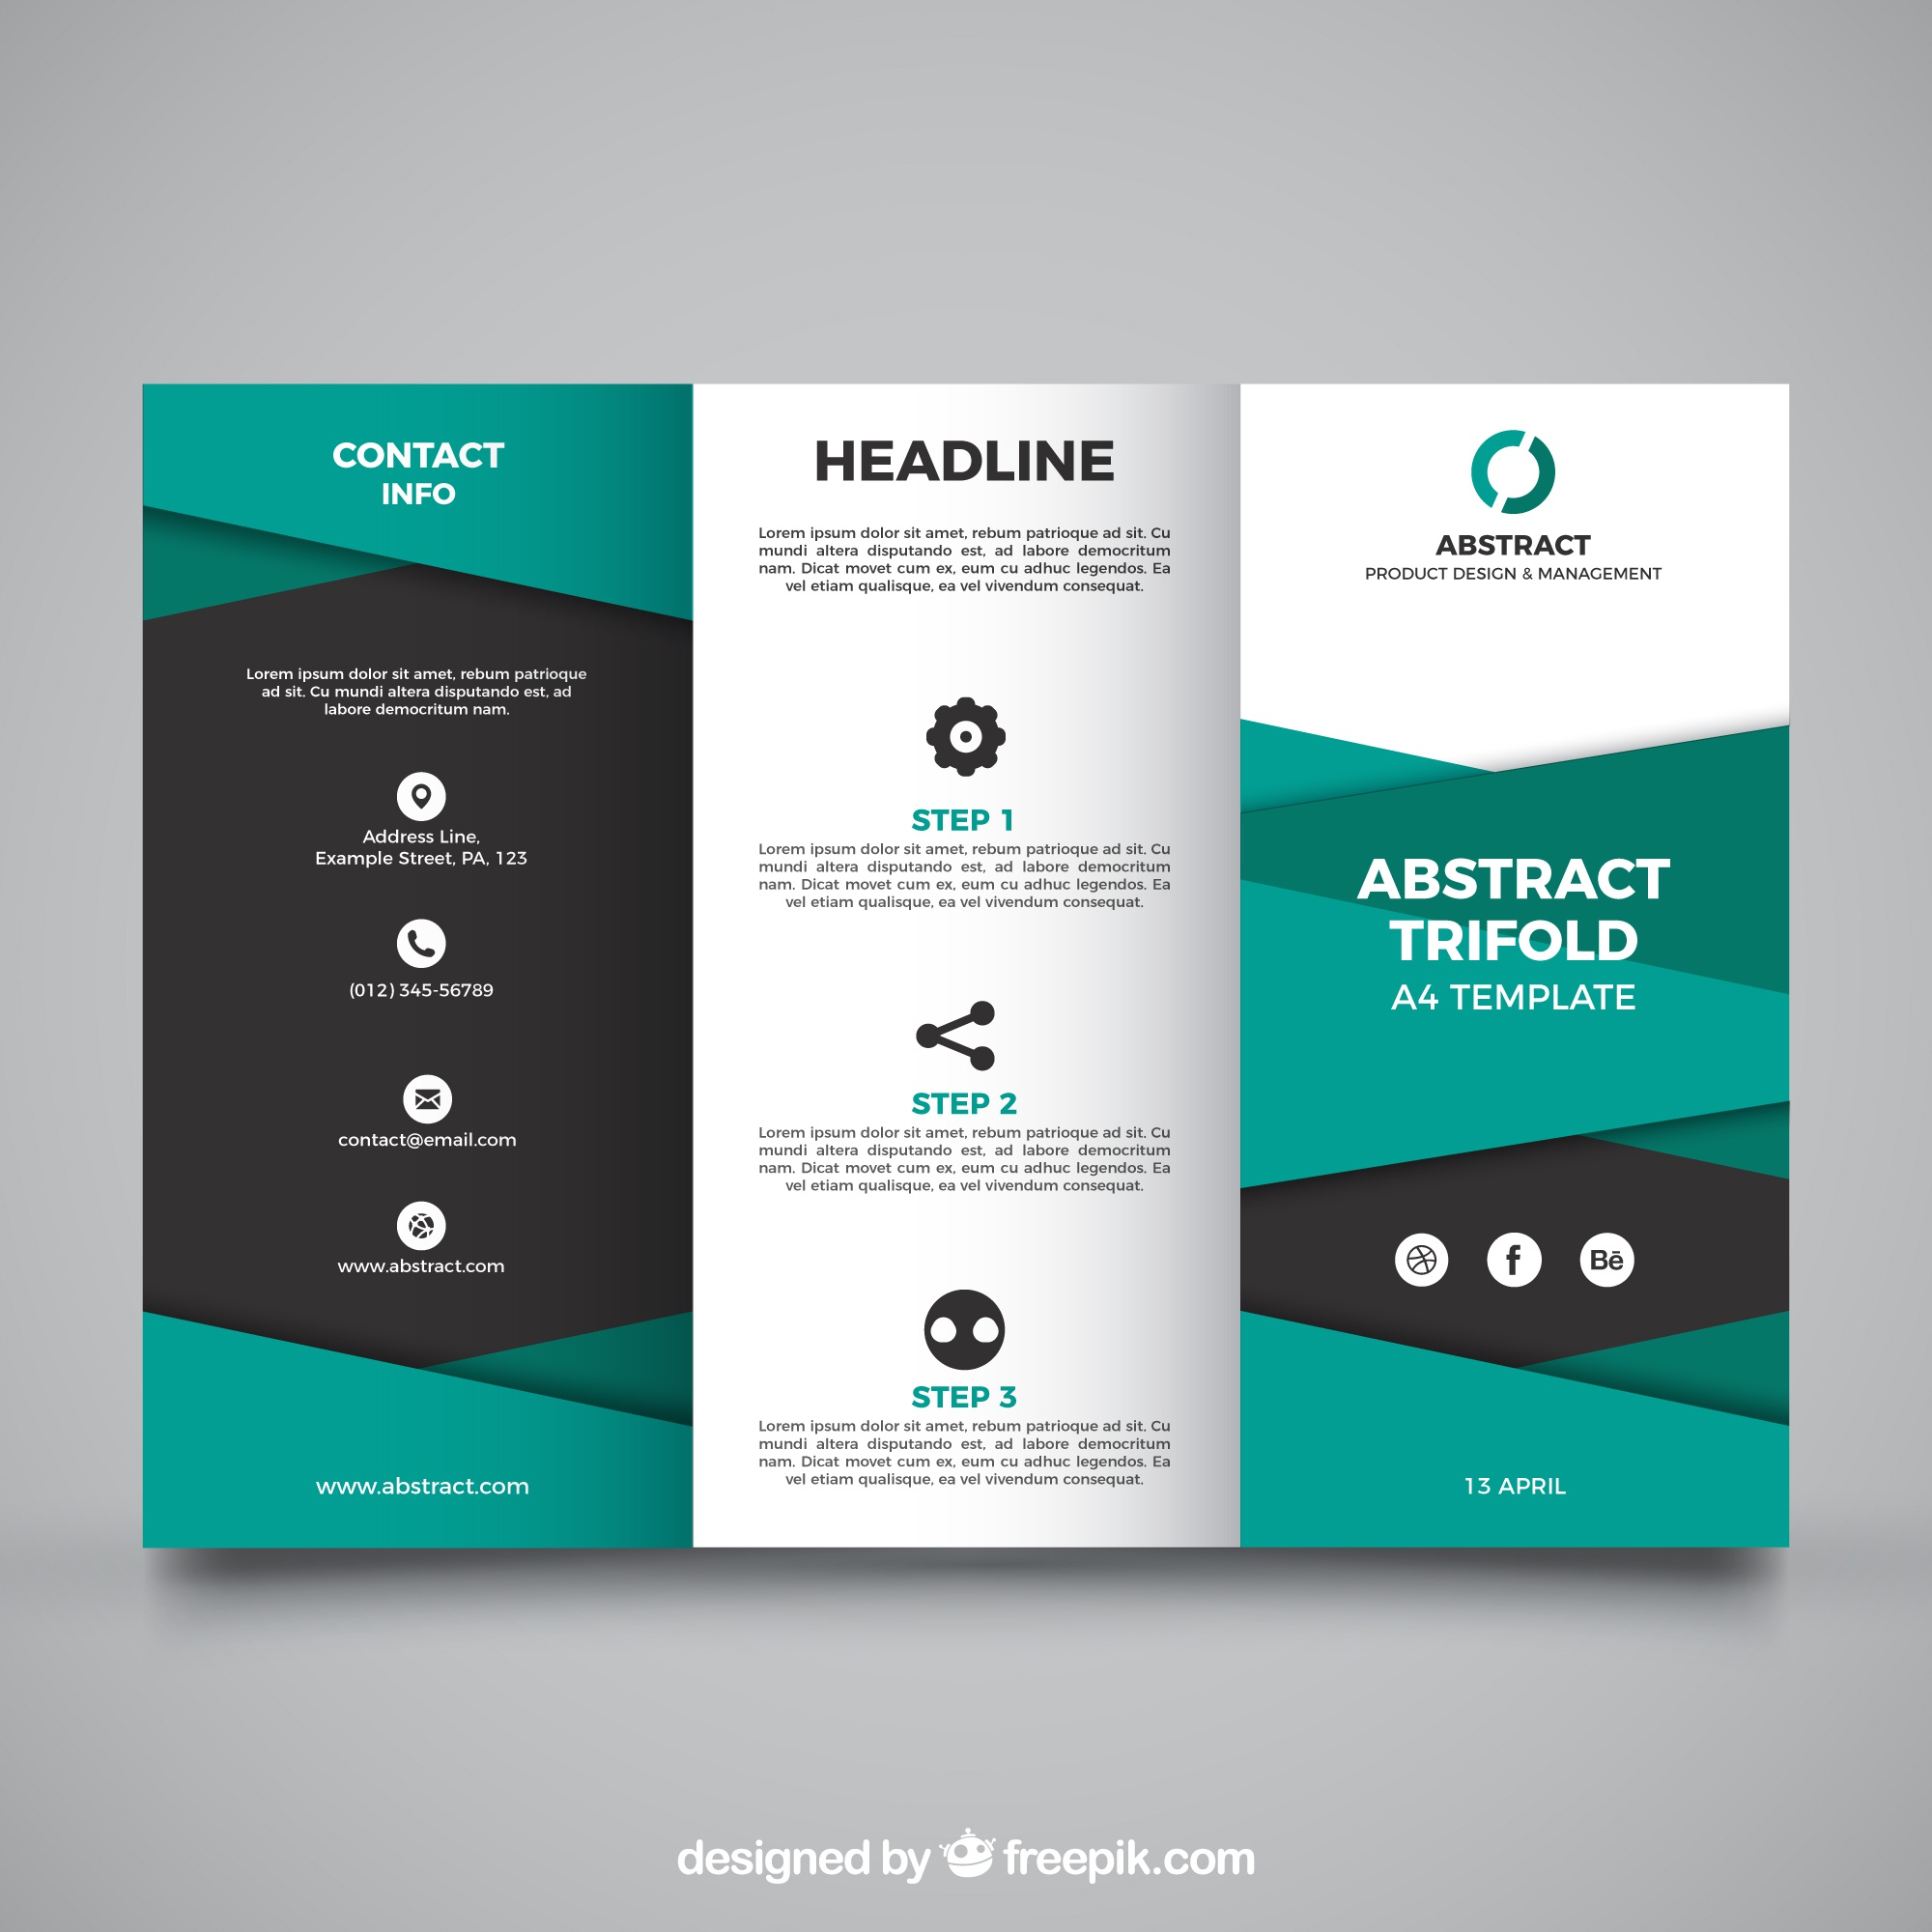 Abstract trifold with green shapes